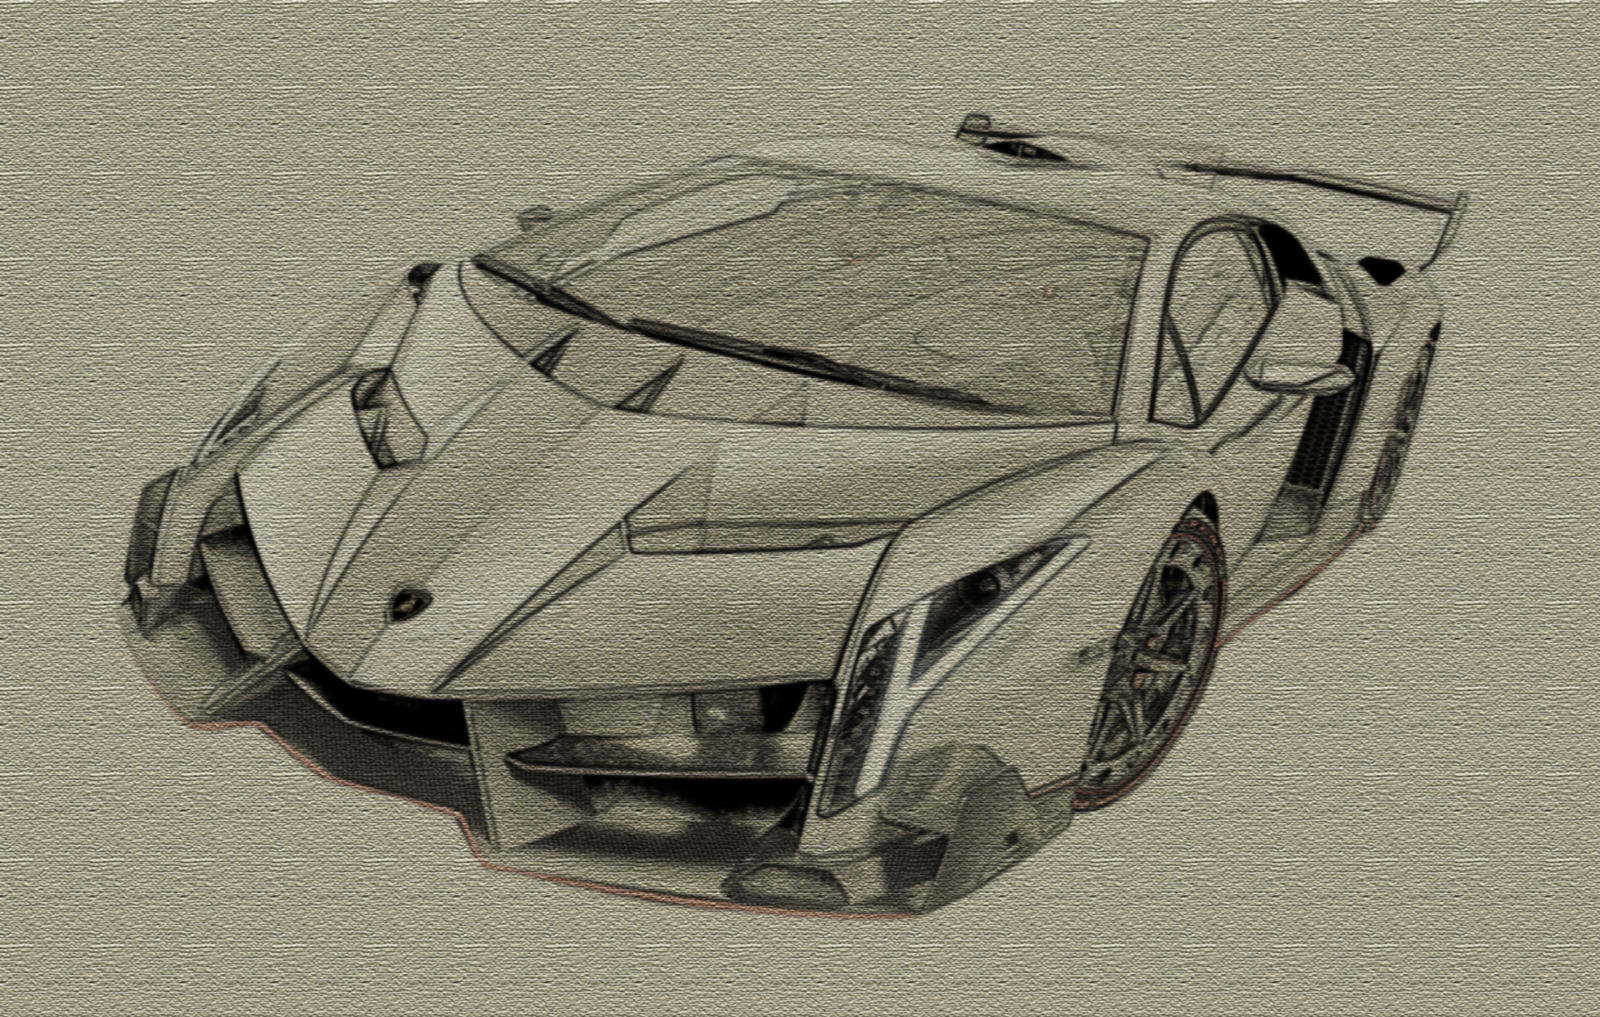 Lamborghini Outline Technical Term Paper Sample May 2019 2779 Words